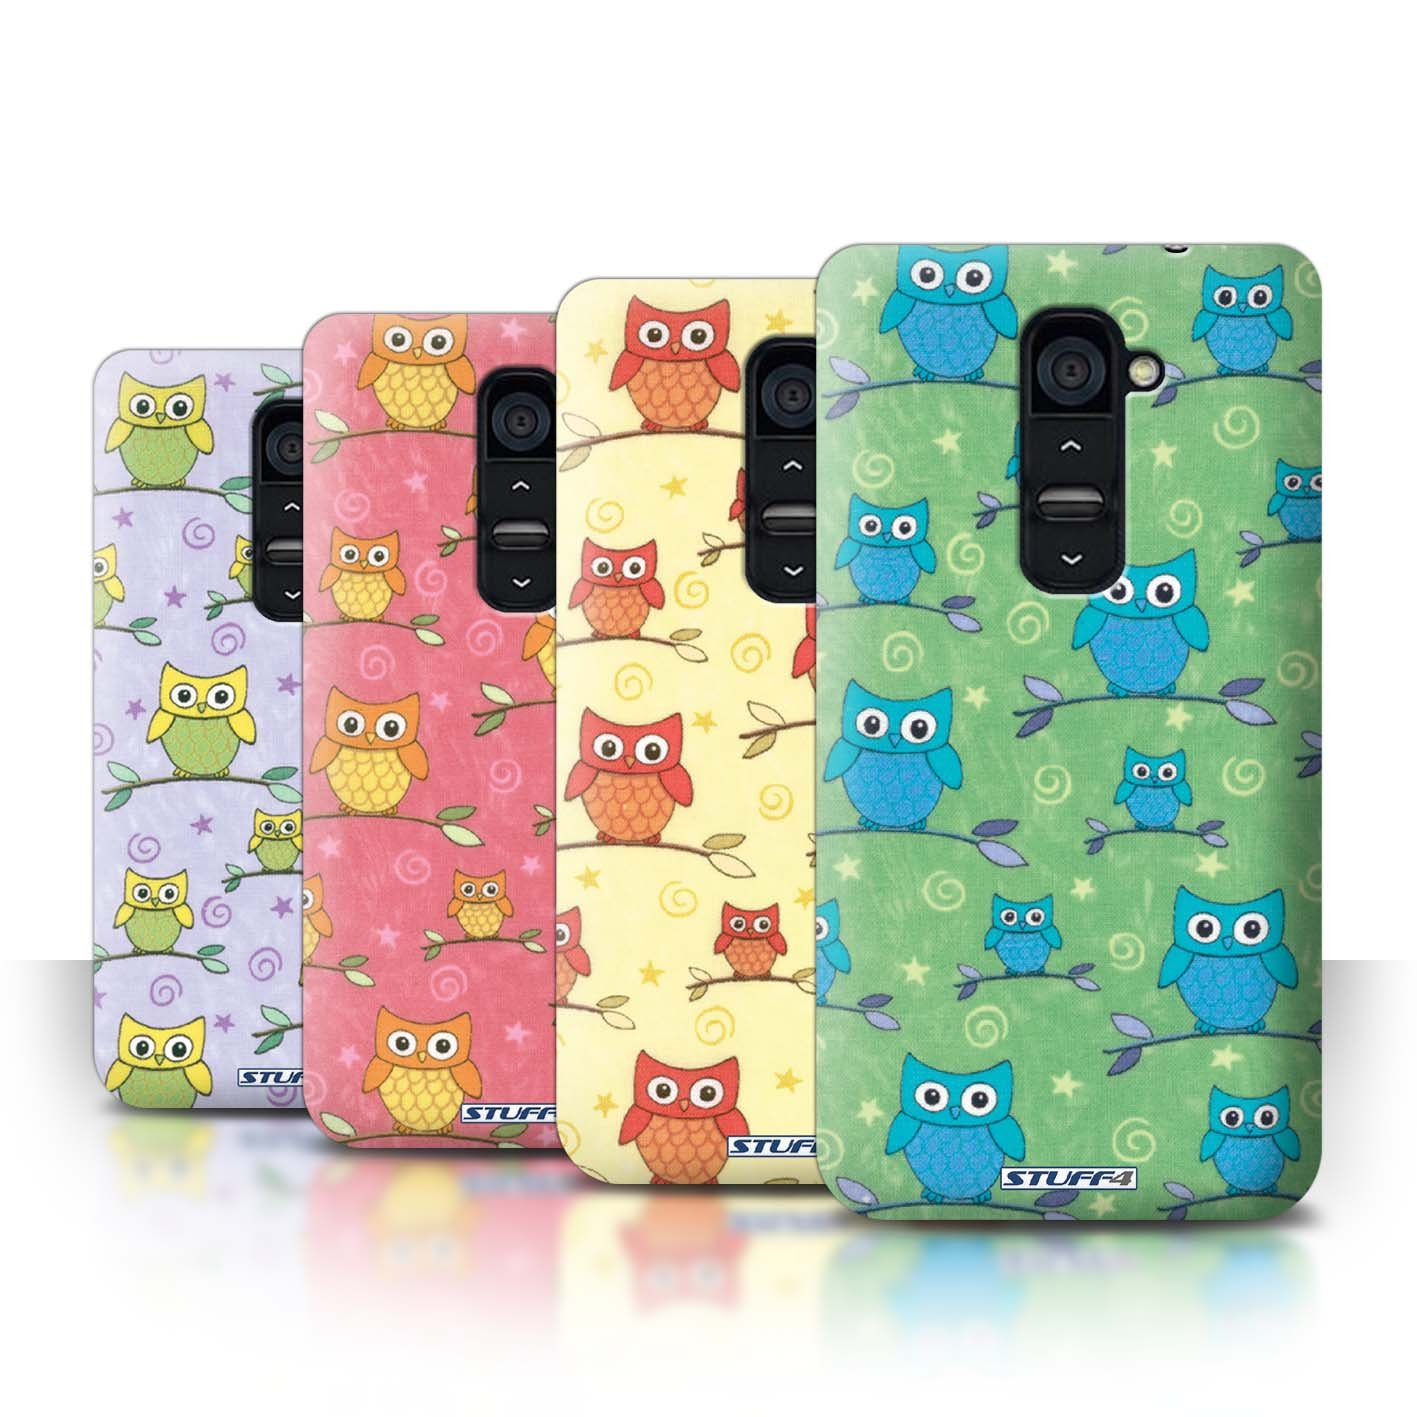 STUFF4 Phone Case / Cover for LG G2 / Pack (11 pcs) / Cute Owl Pattern Collection / by Deb Strain / Penny Lane Publishing, Inc.reviews and more news